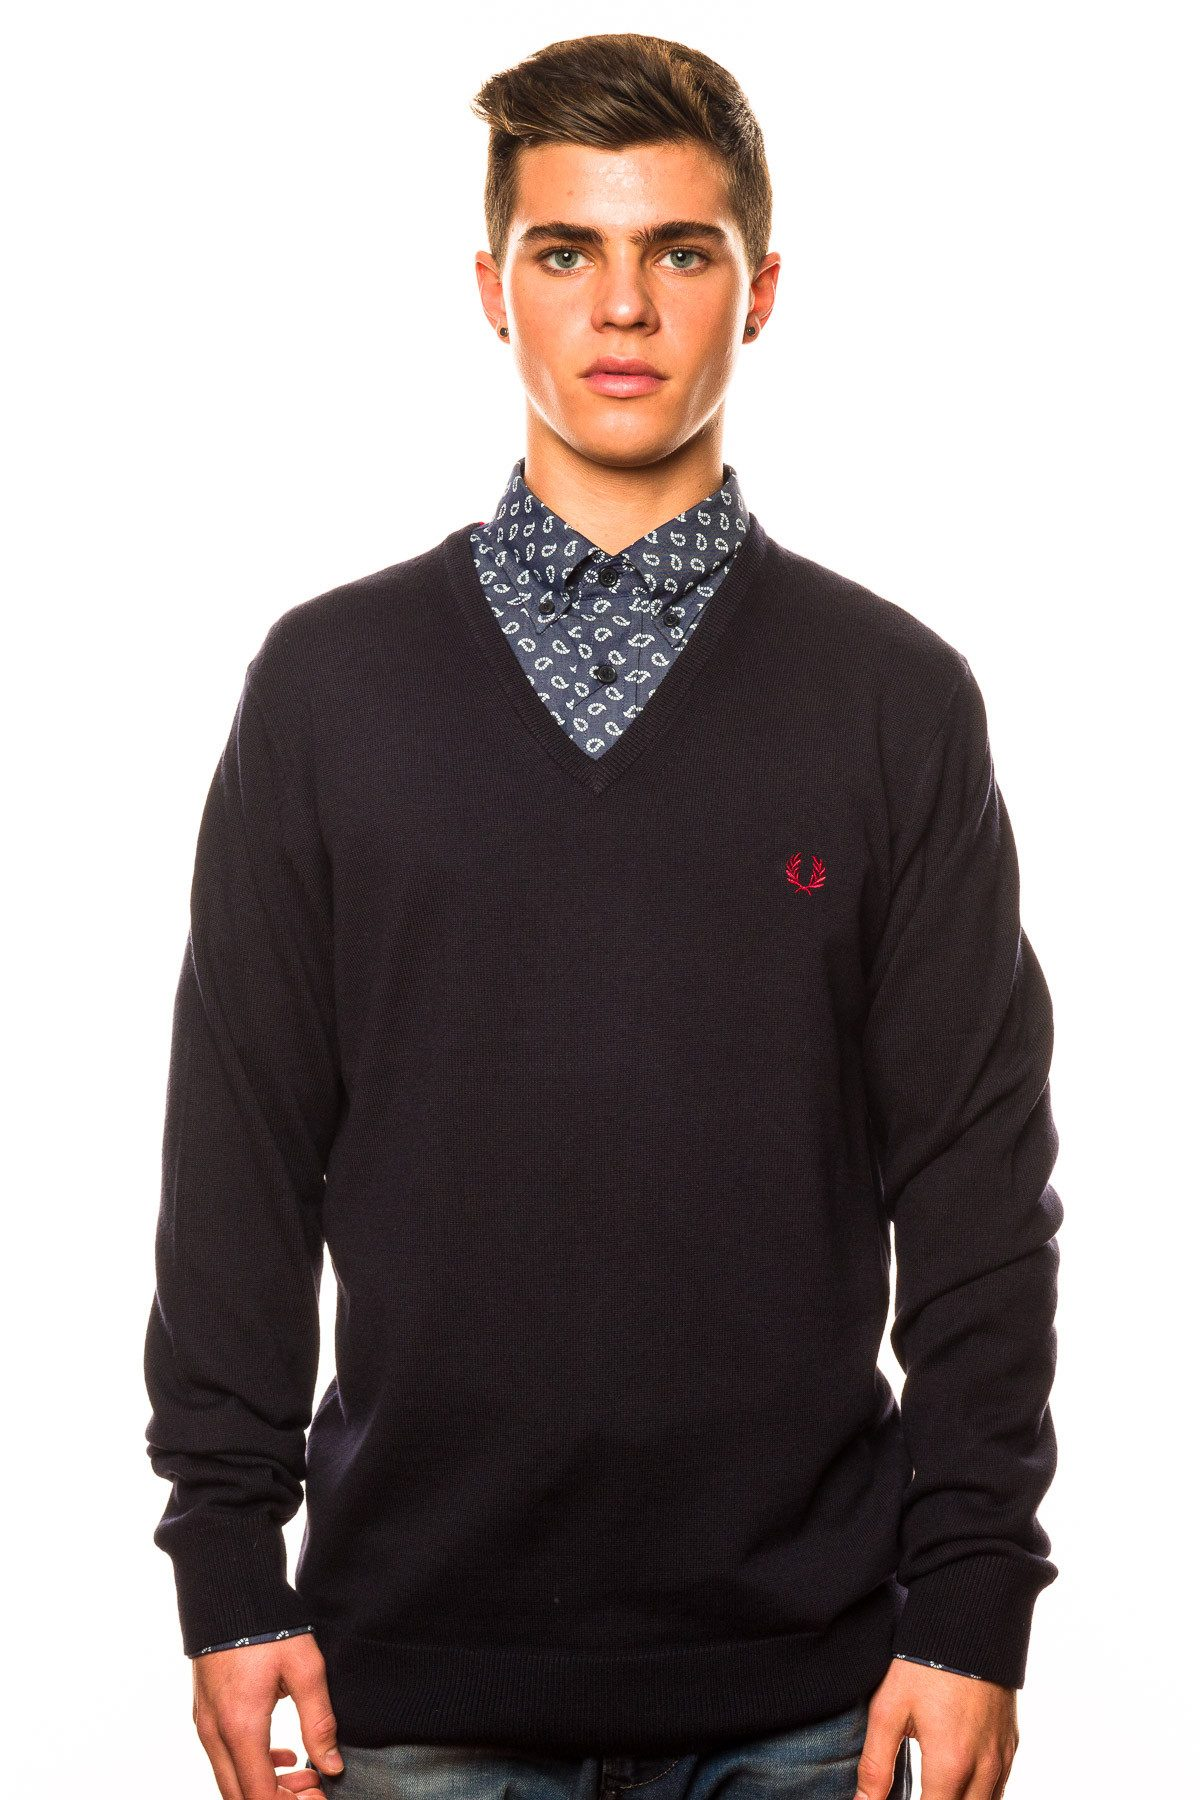 Sweater - Fred Perry Classic Tipped V-Neck Sweater